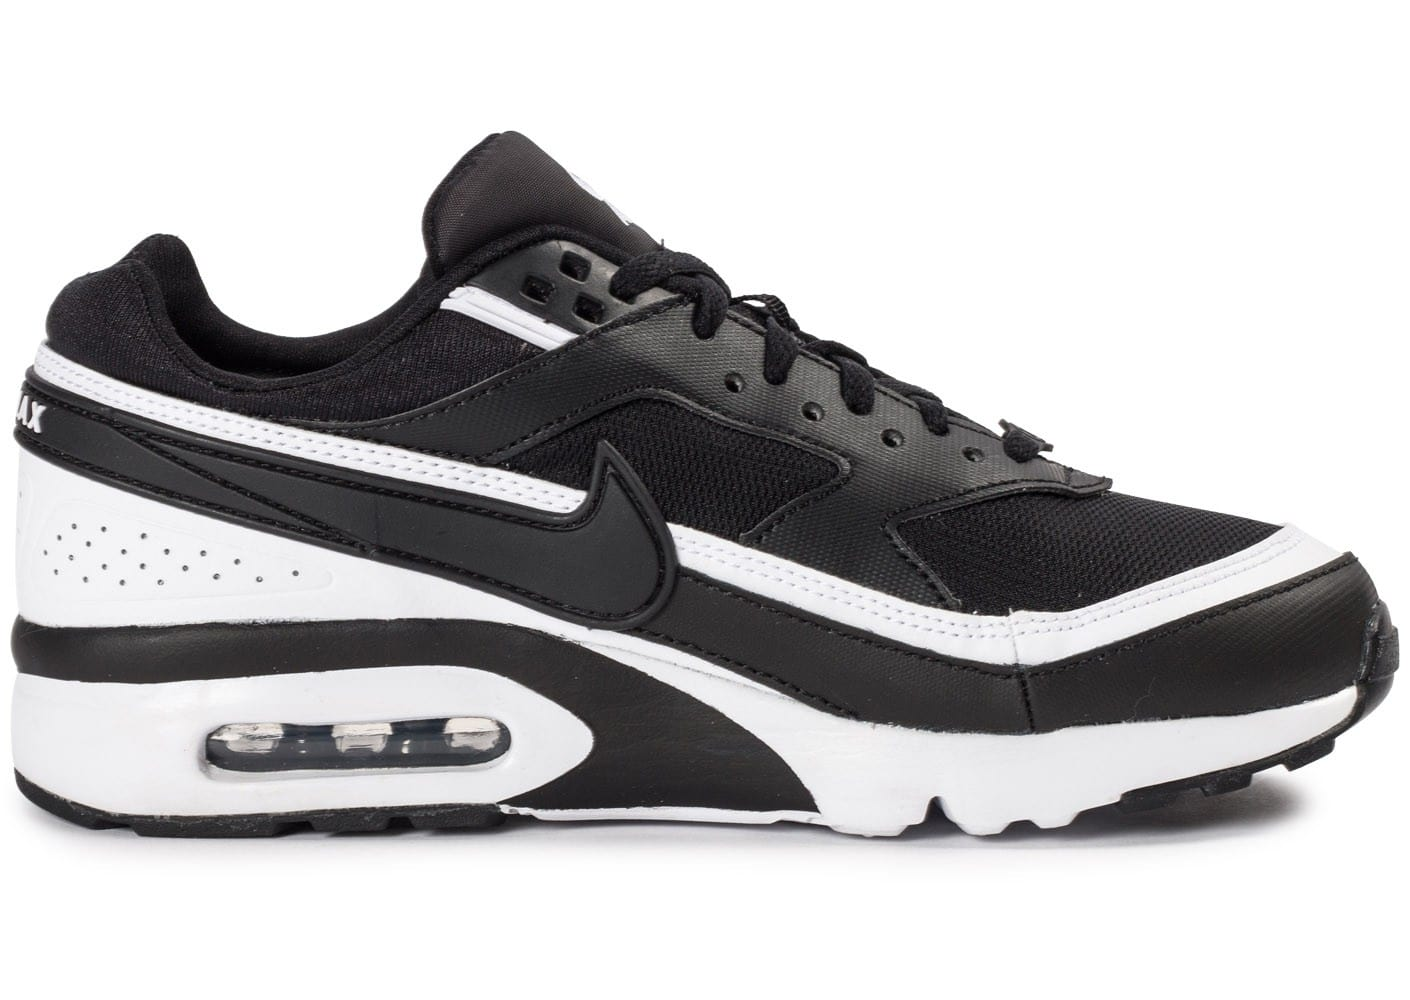 nike air max bw junior noire et blanche chaussures chaussures chausport. Black Bedroom Furniture Sets. Home Design Ideas